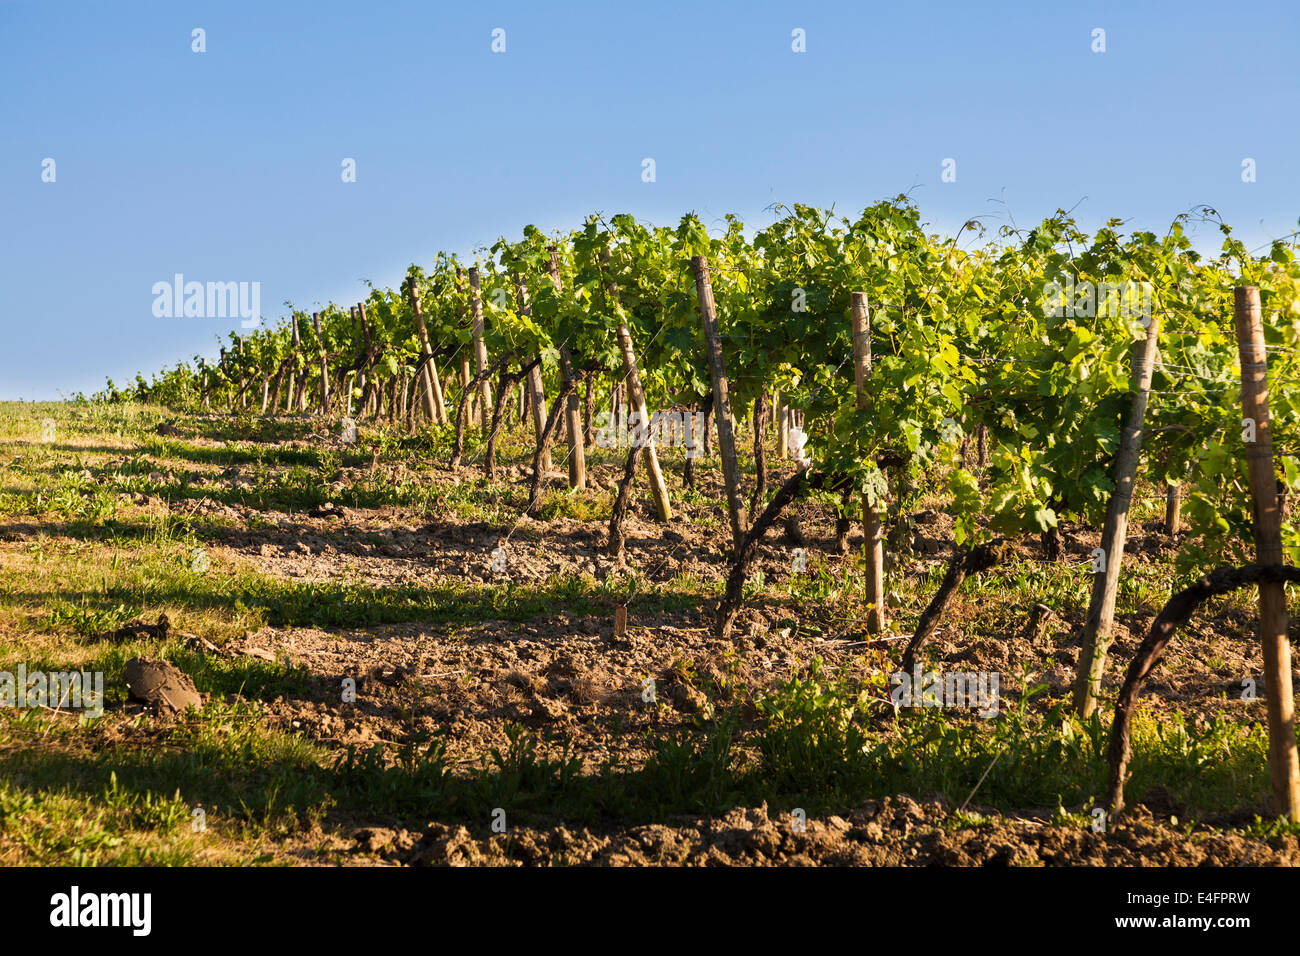 Ends of the rows of grape vines - Stock Image